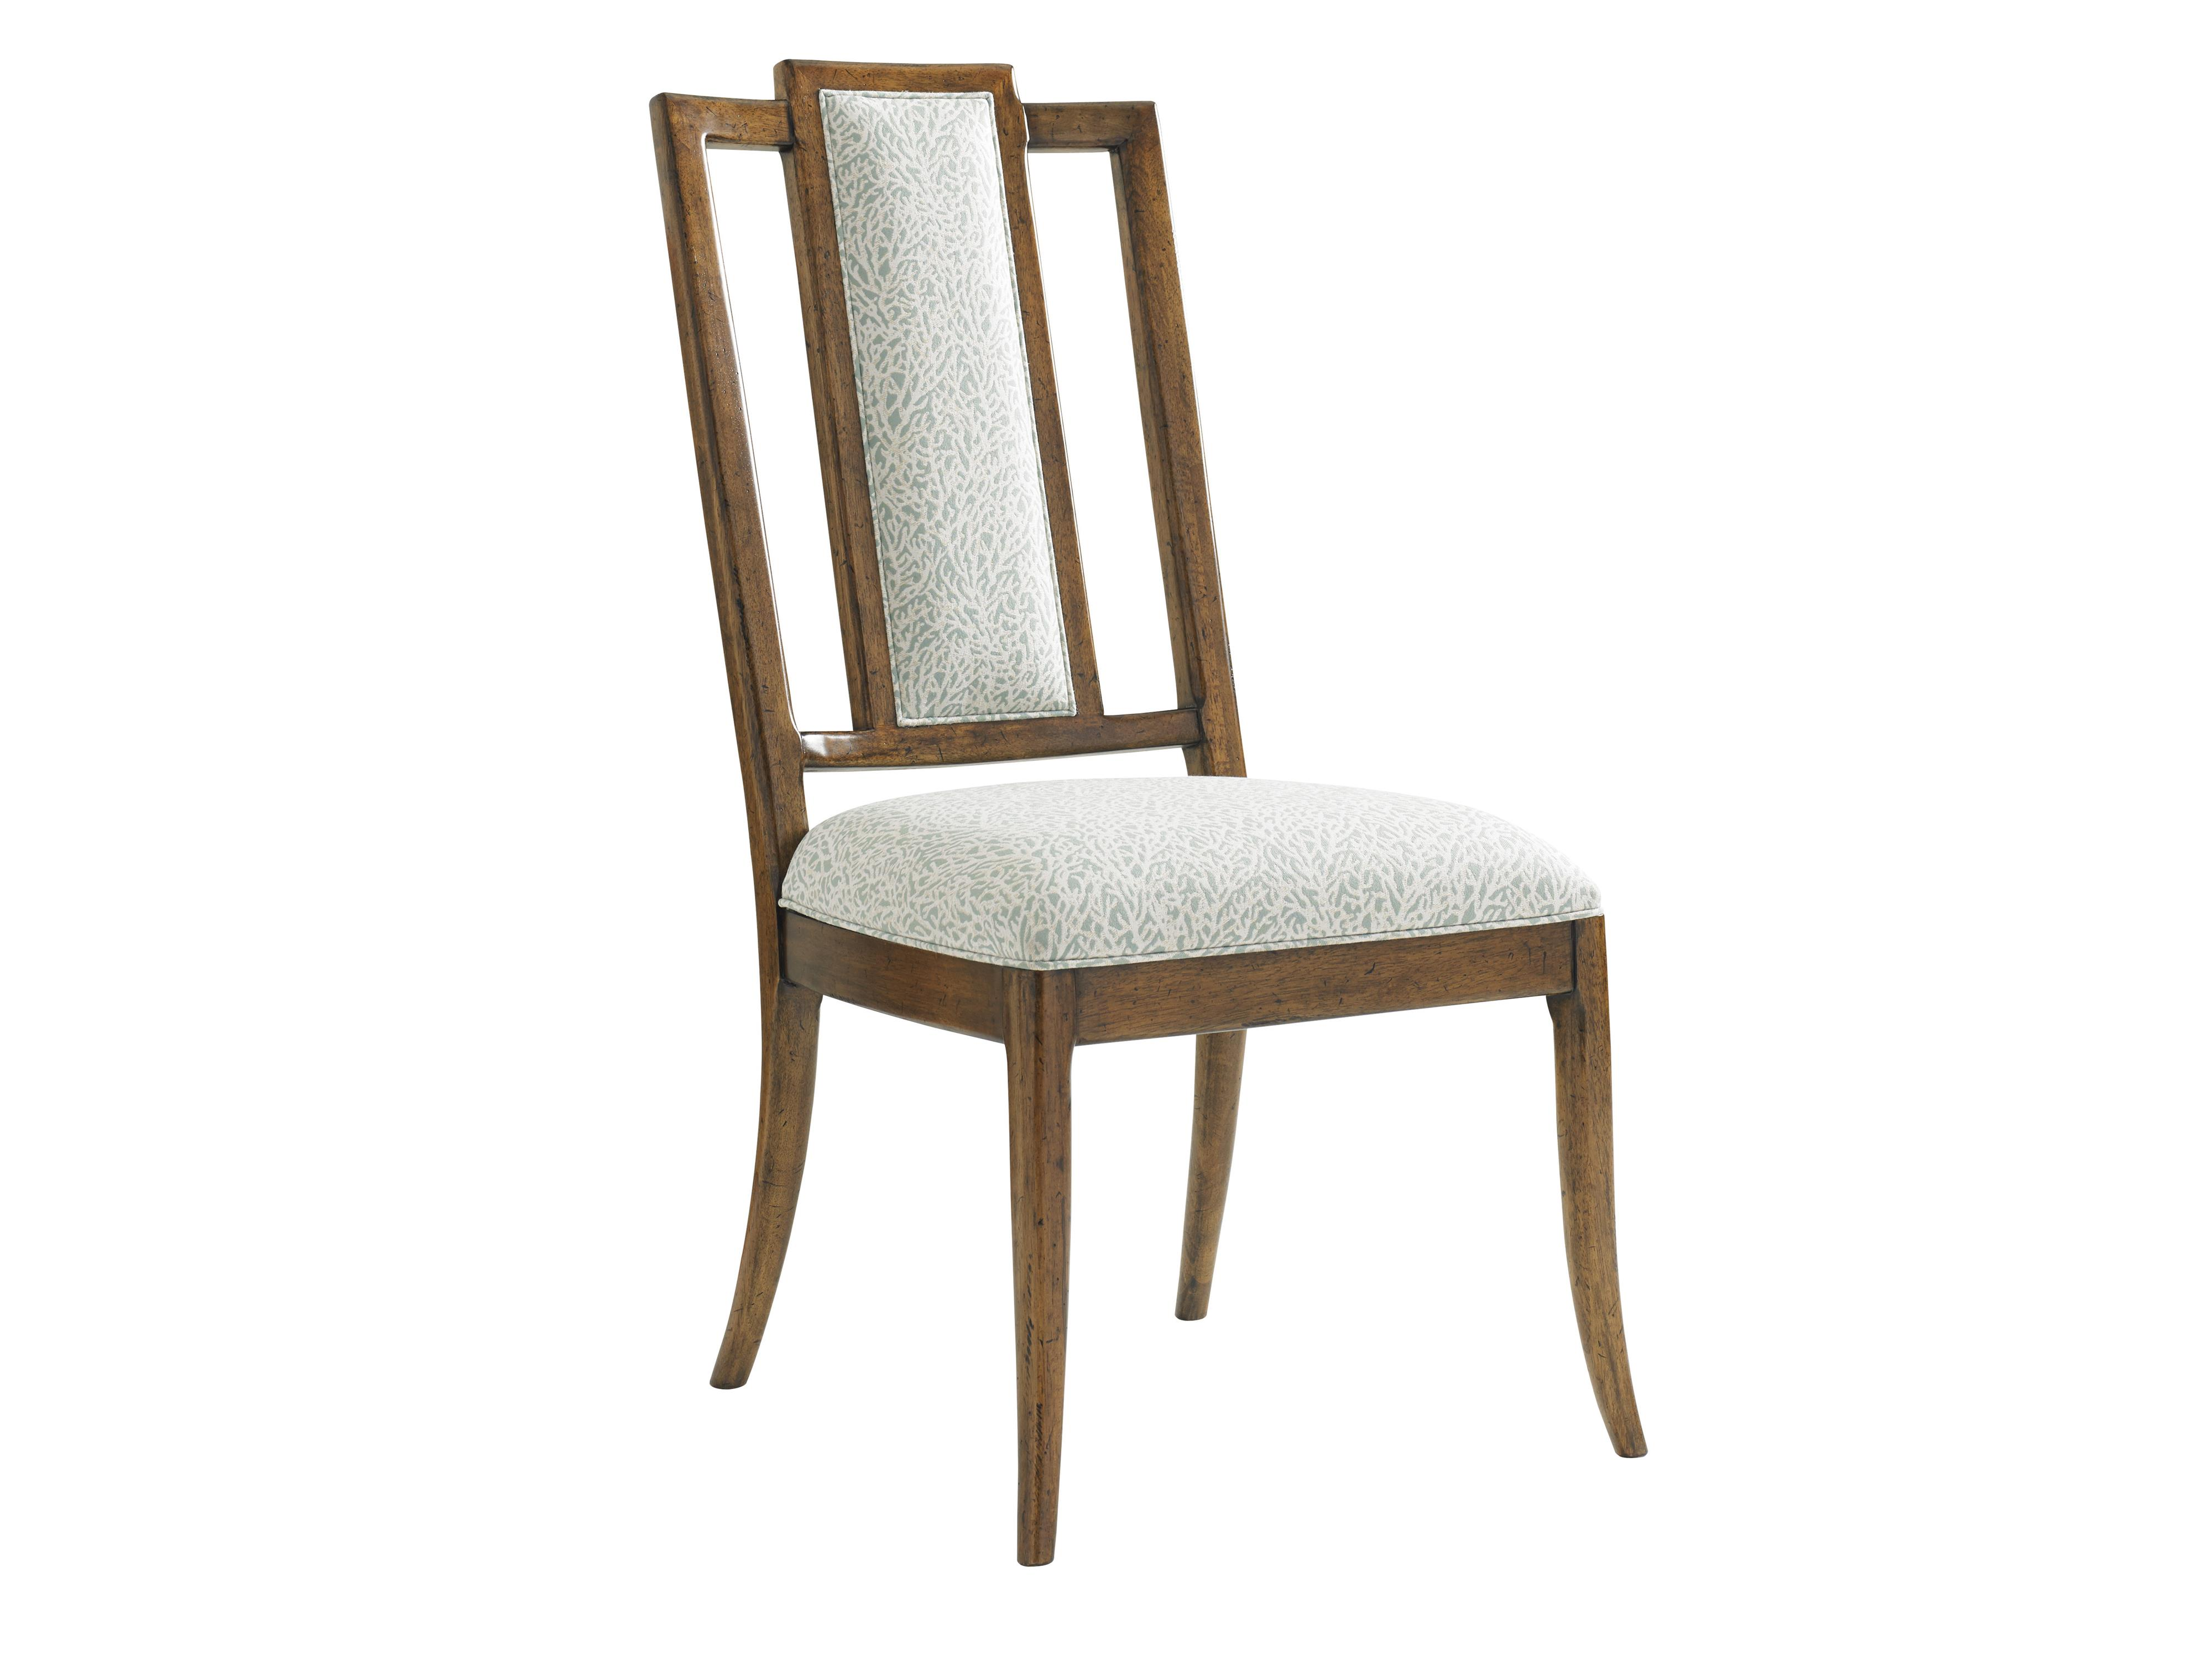 Bali Hai Quickship St. Bart's Side Chair by Tommy Bahama Home at Baer's Furniture